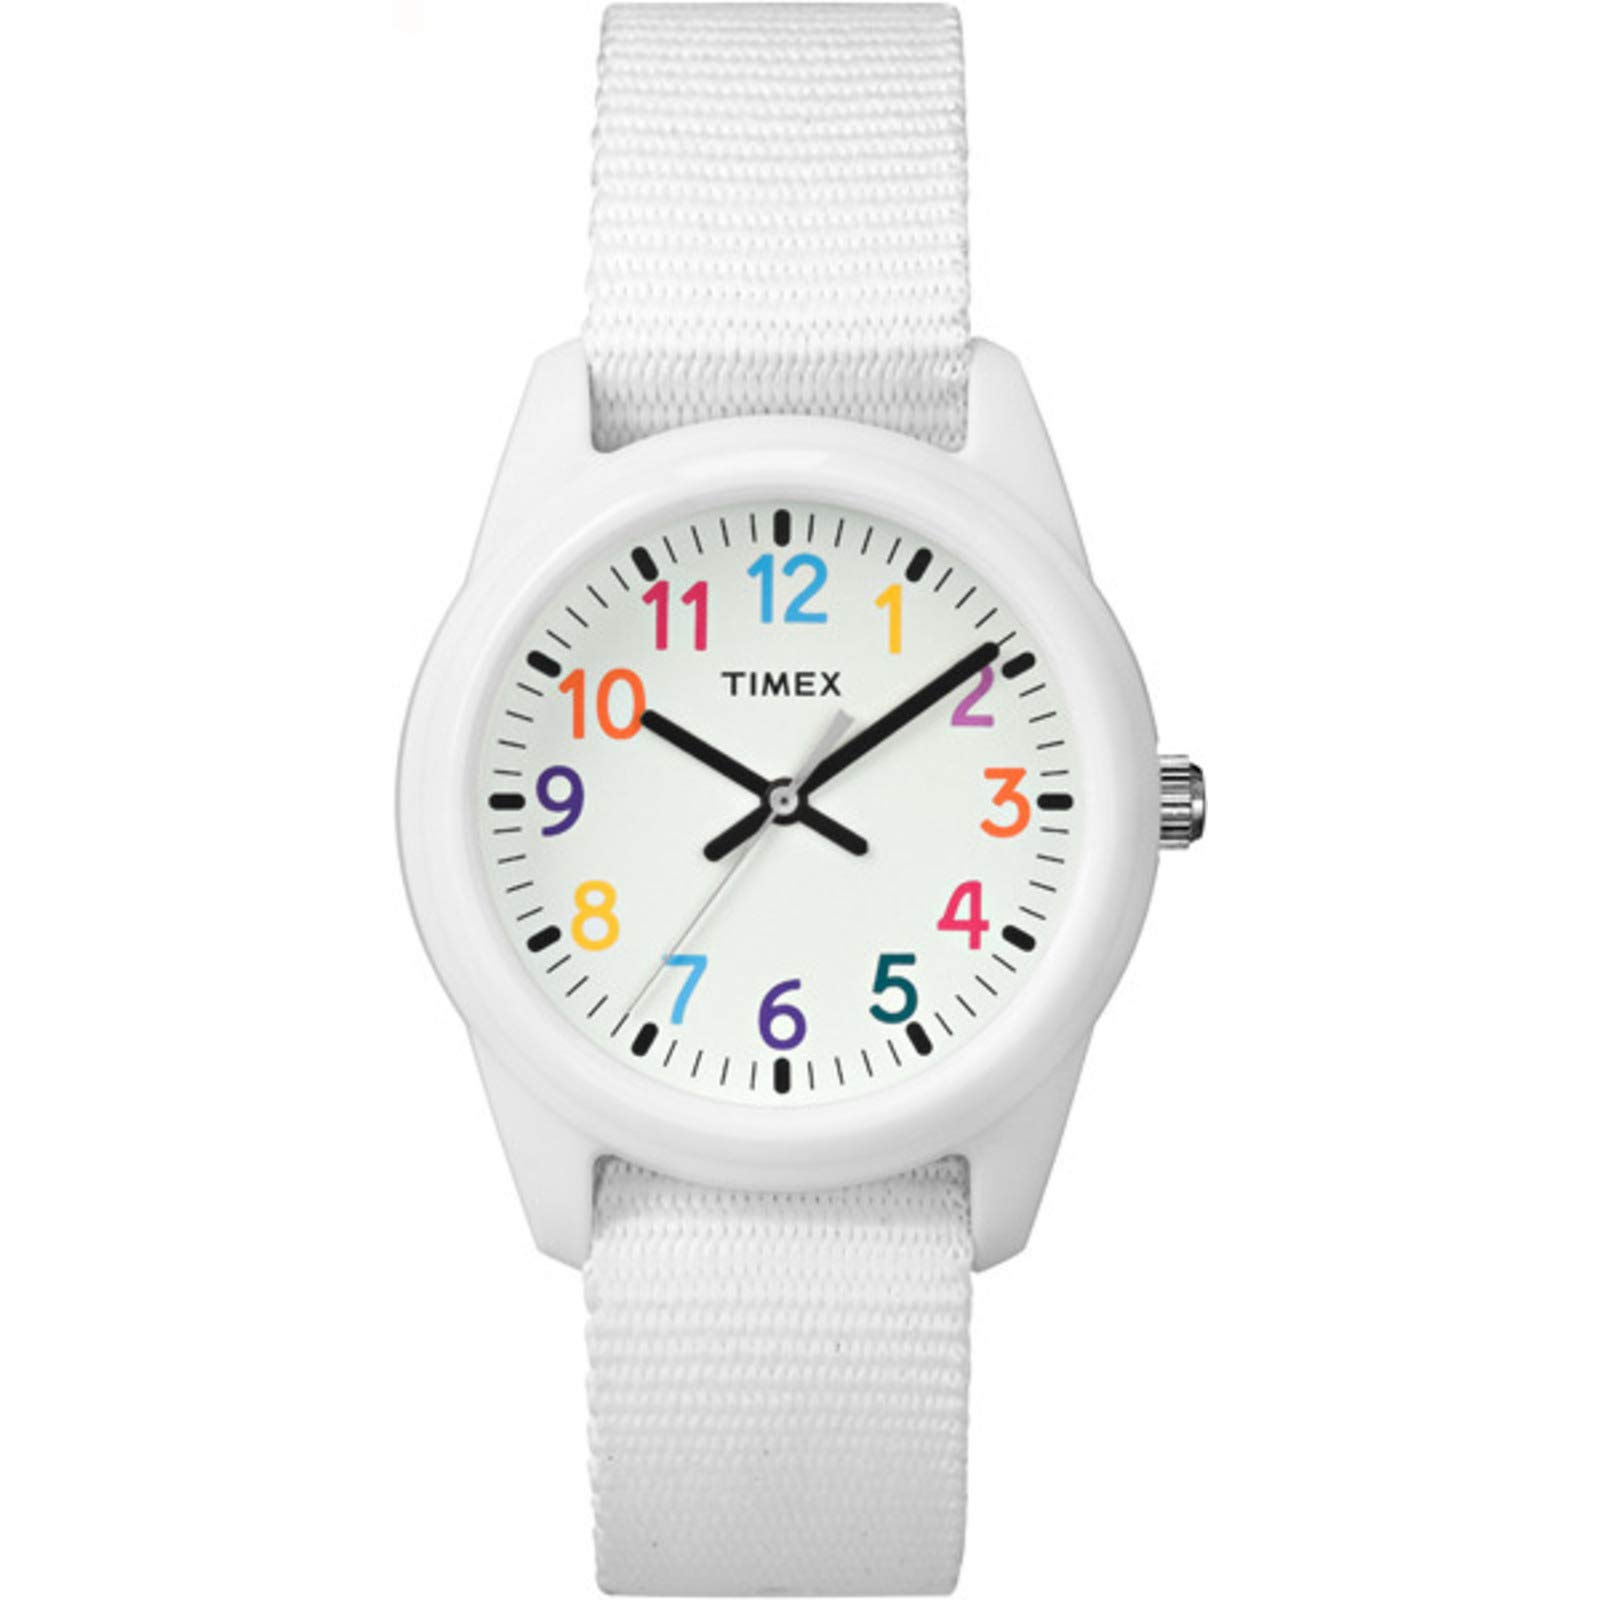 Timex Kids Analog 30mm Fabric Strap |White| Rainbow Youth Watch TW7C10300 by Timex